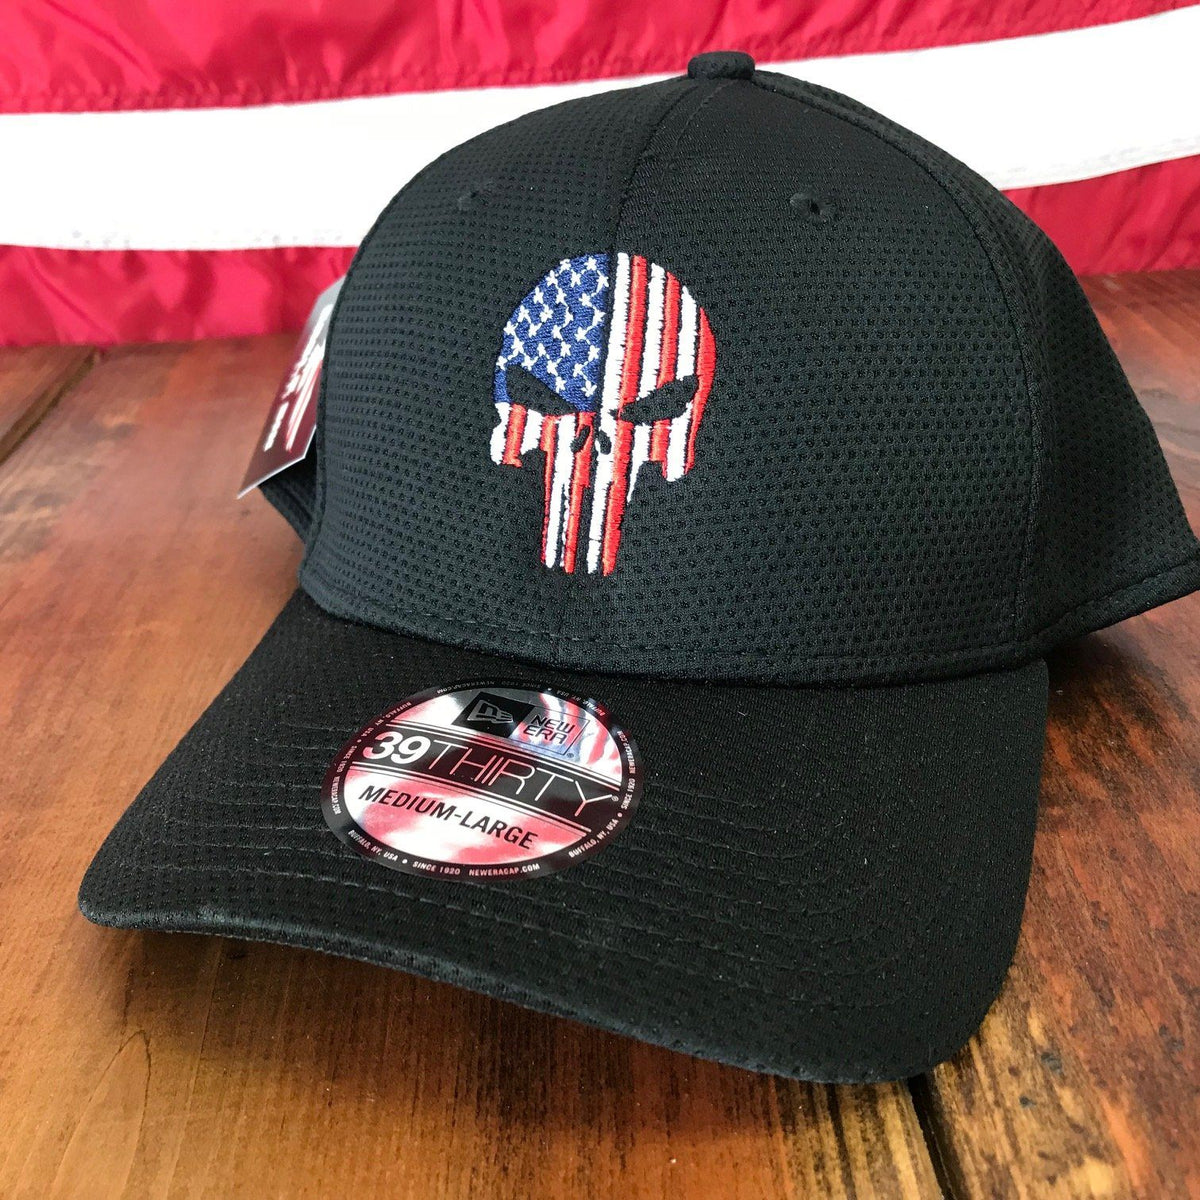 Fearless Patriot Solarera Hat - Discontinued